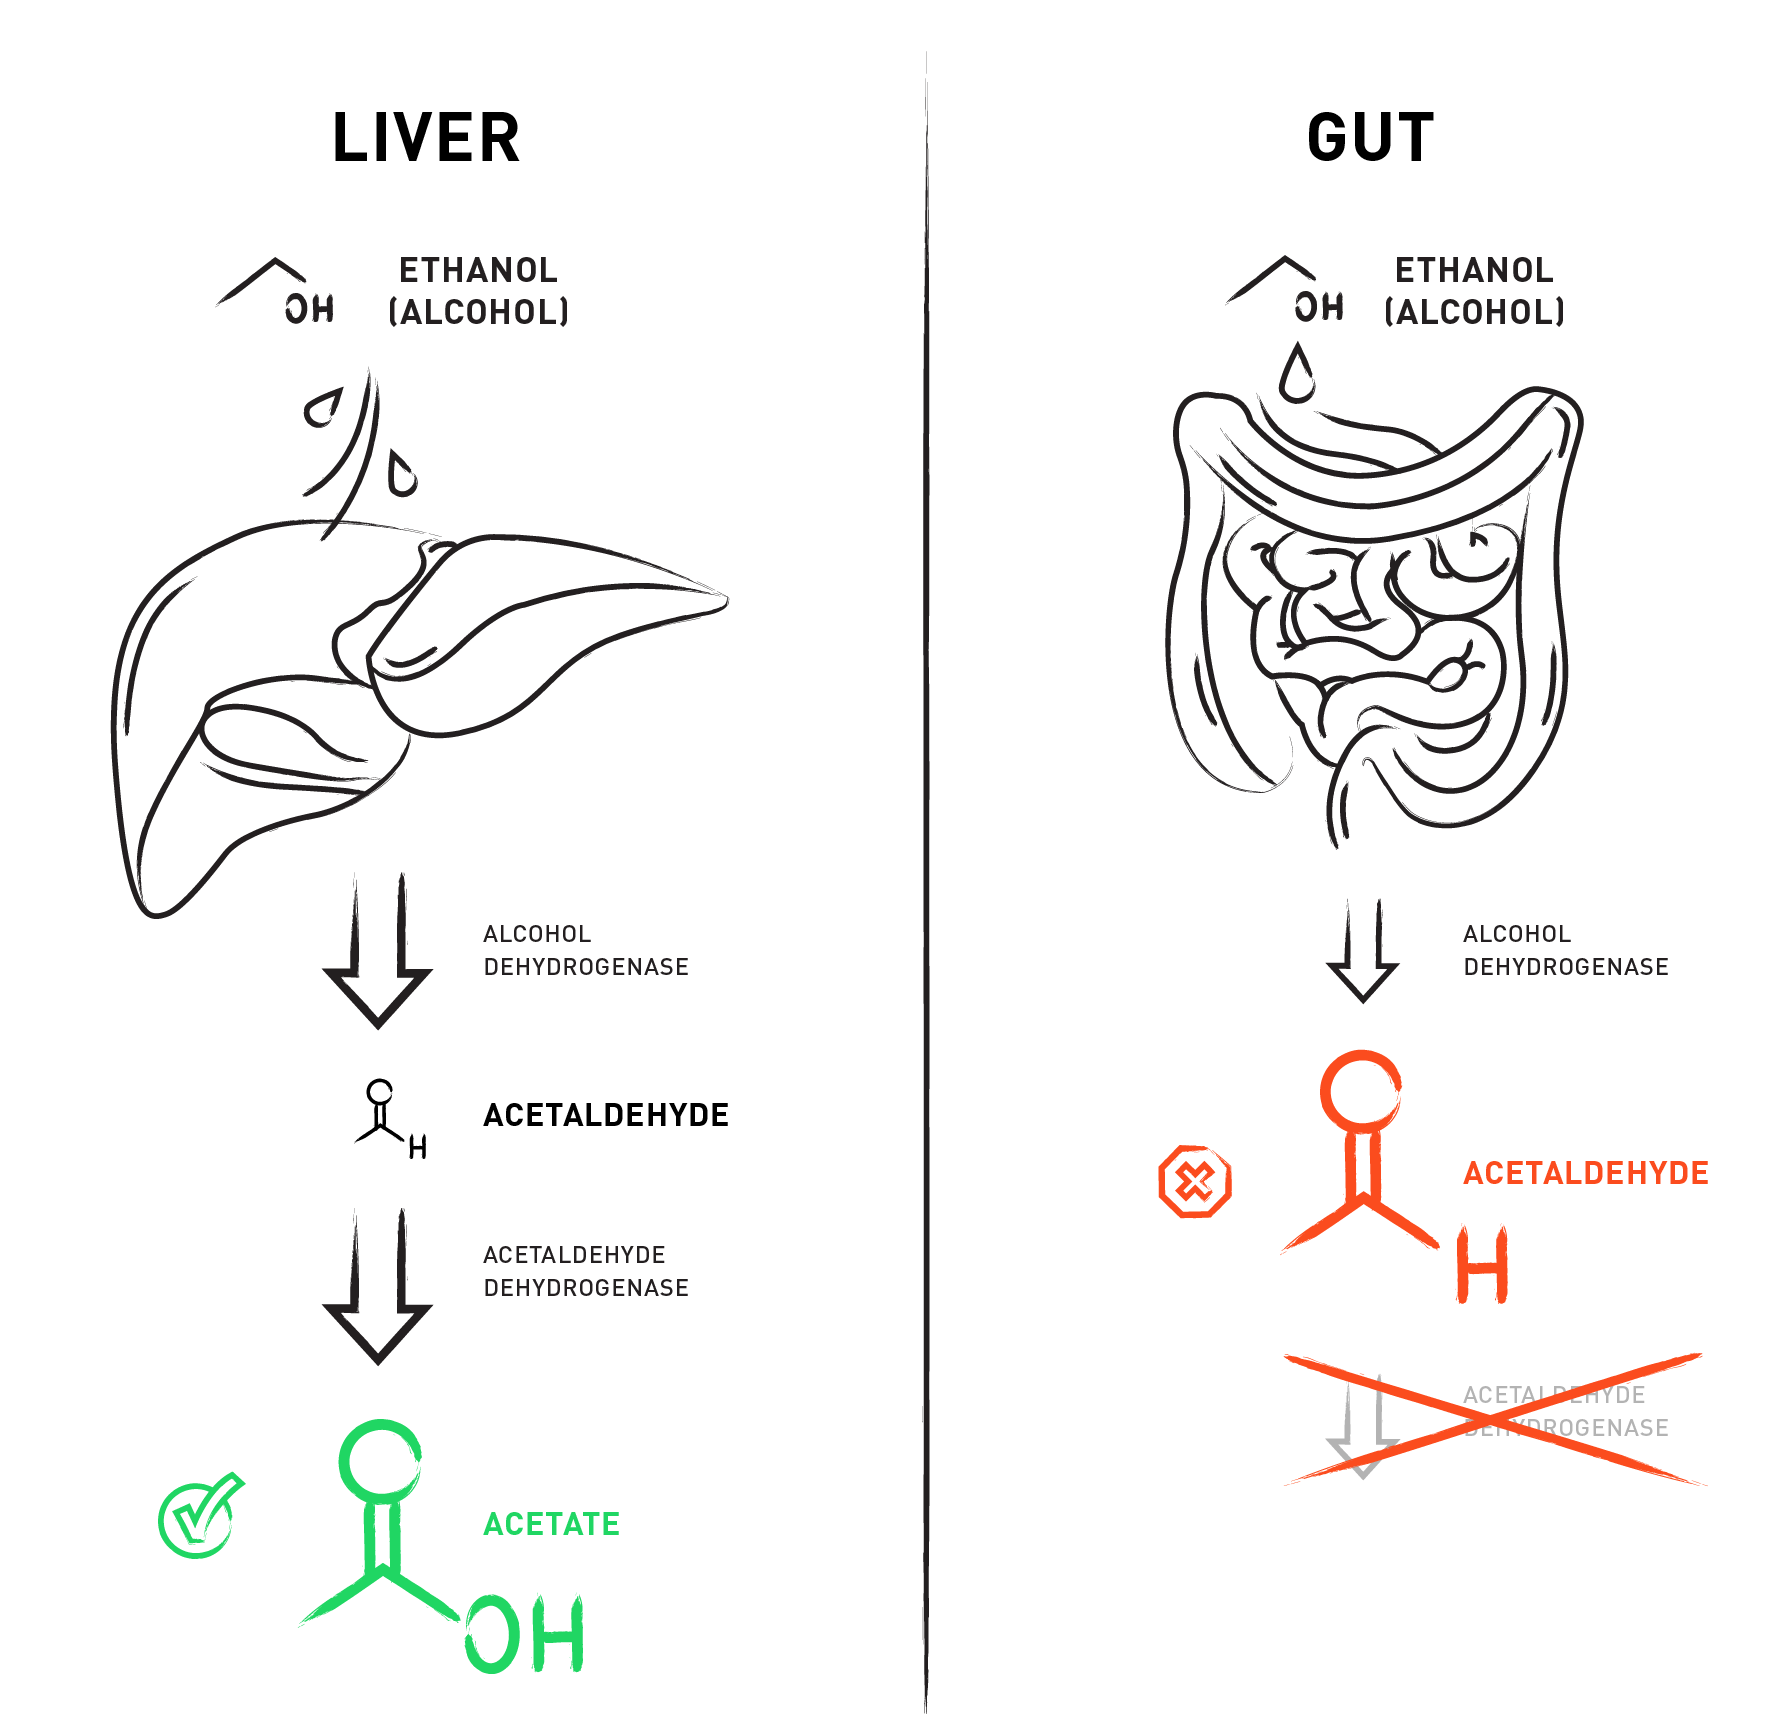 Metabolizing alcohol in the liver versus the gut